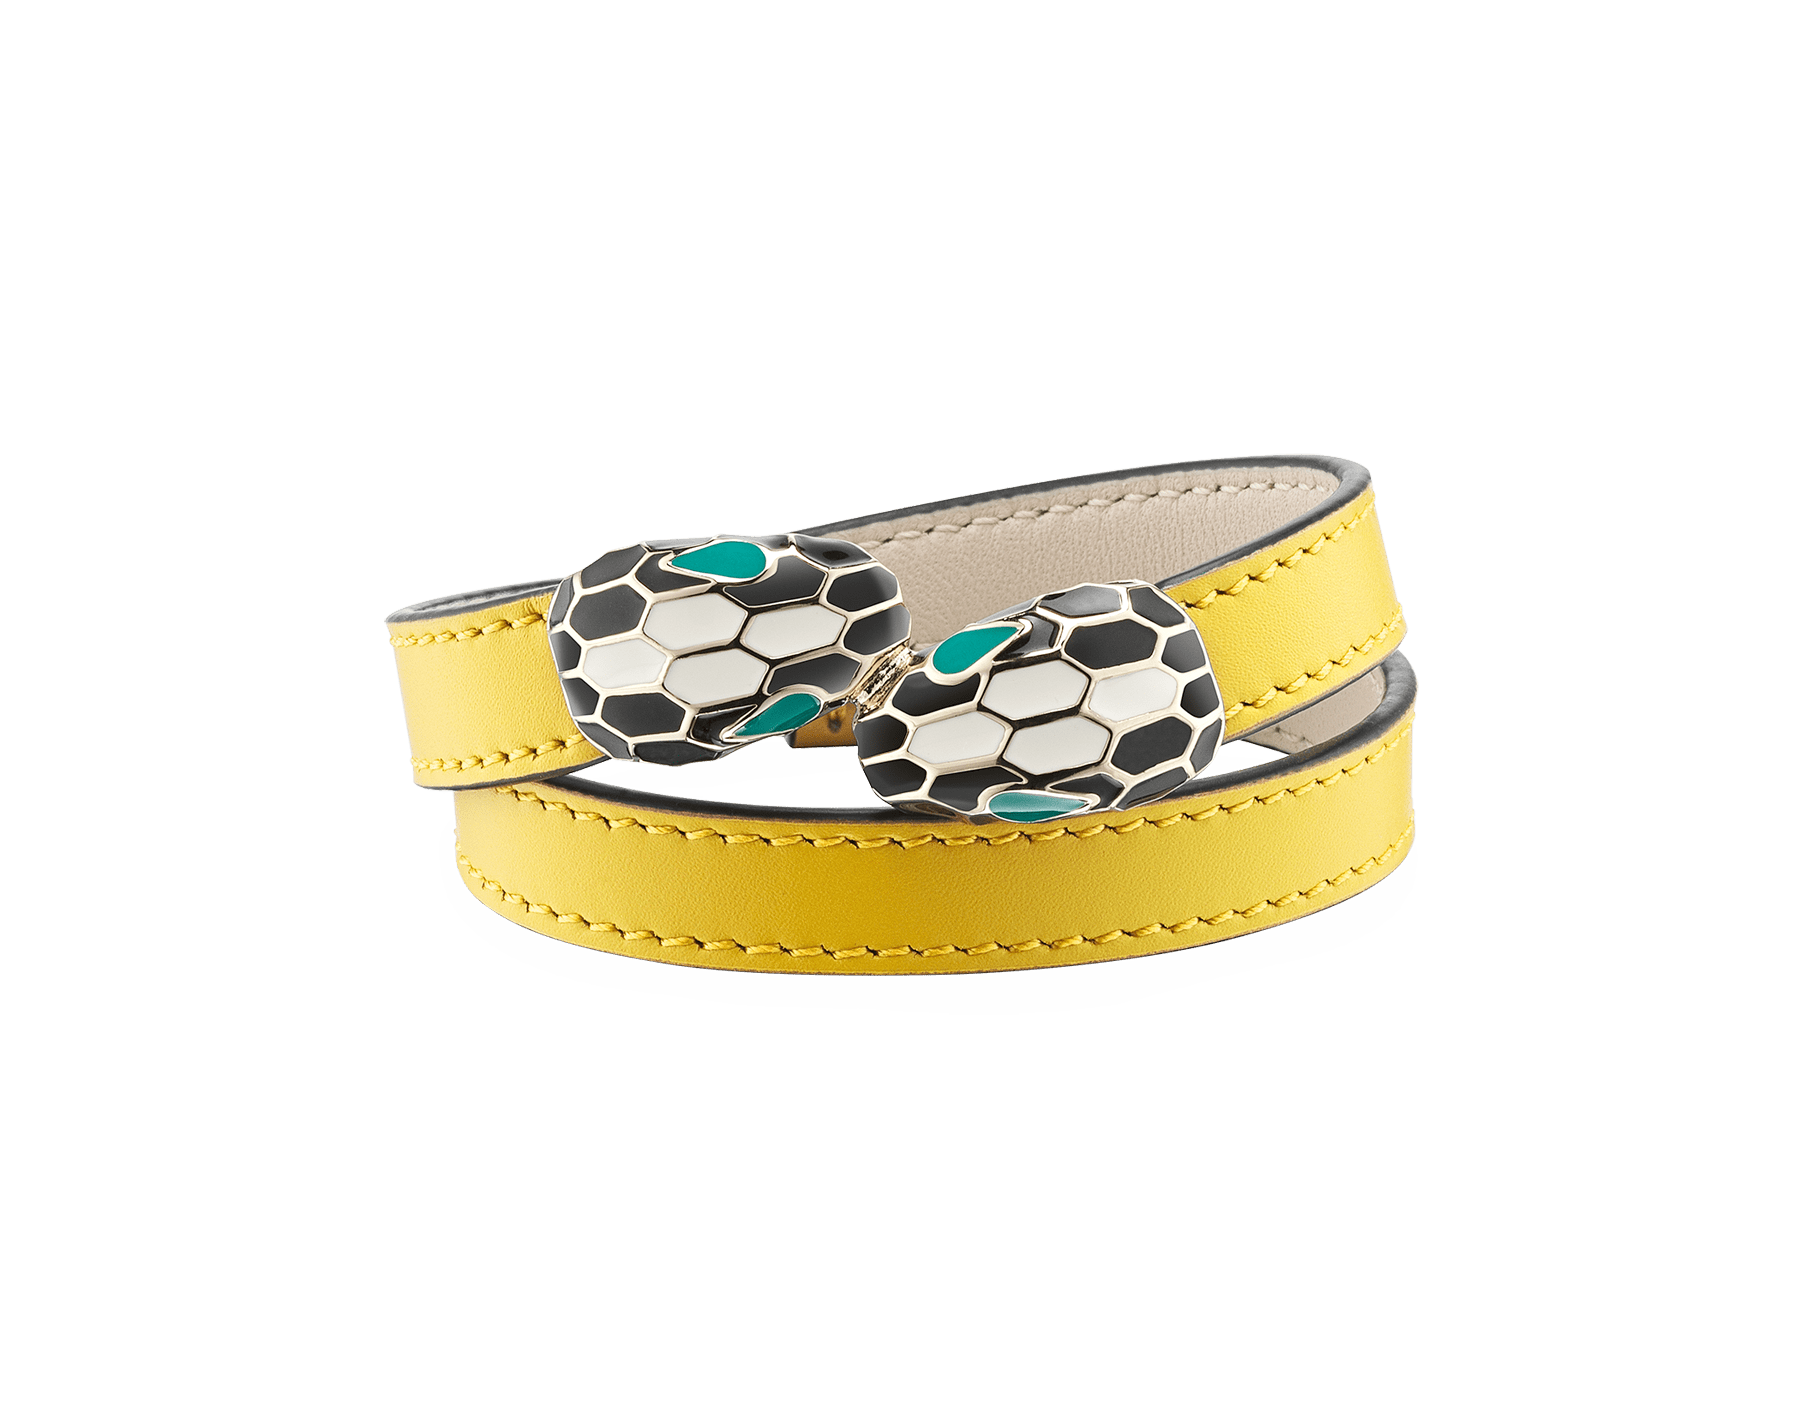 Serpenti Forever multi-coiled bracelet in daisy topaz calf leather, with light gold plated brass hardware. Iconic contraire snakehead décor in black and white agate enamel, with emerald green enamel eyes. MCSerp-CL-DT image 1